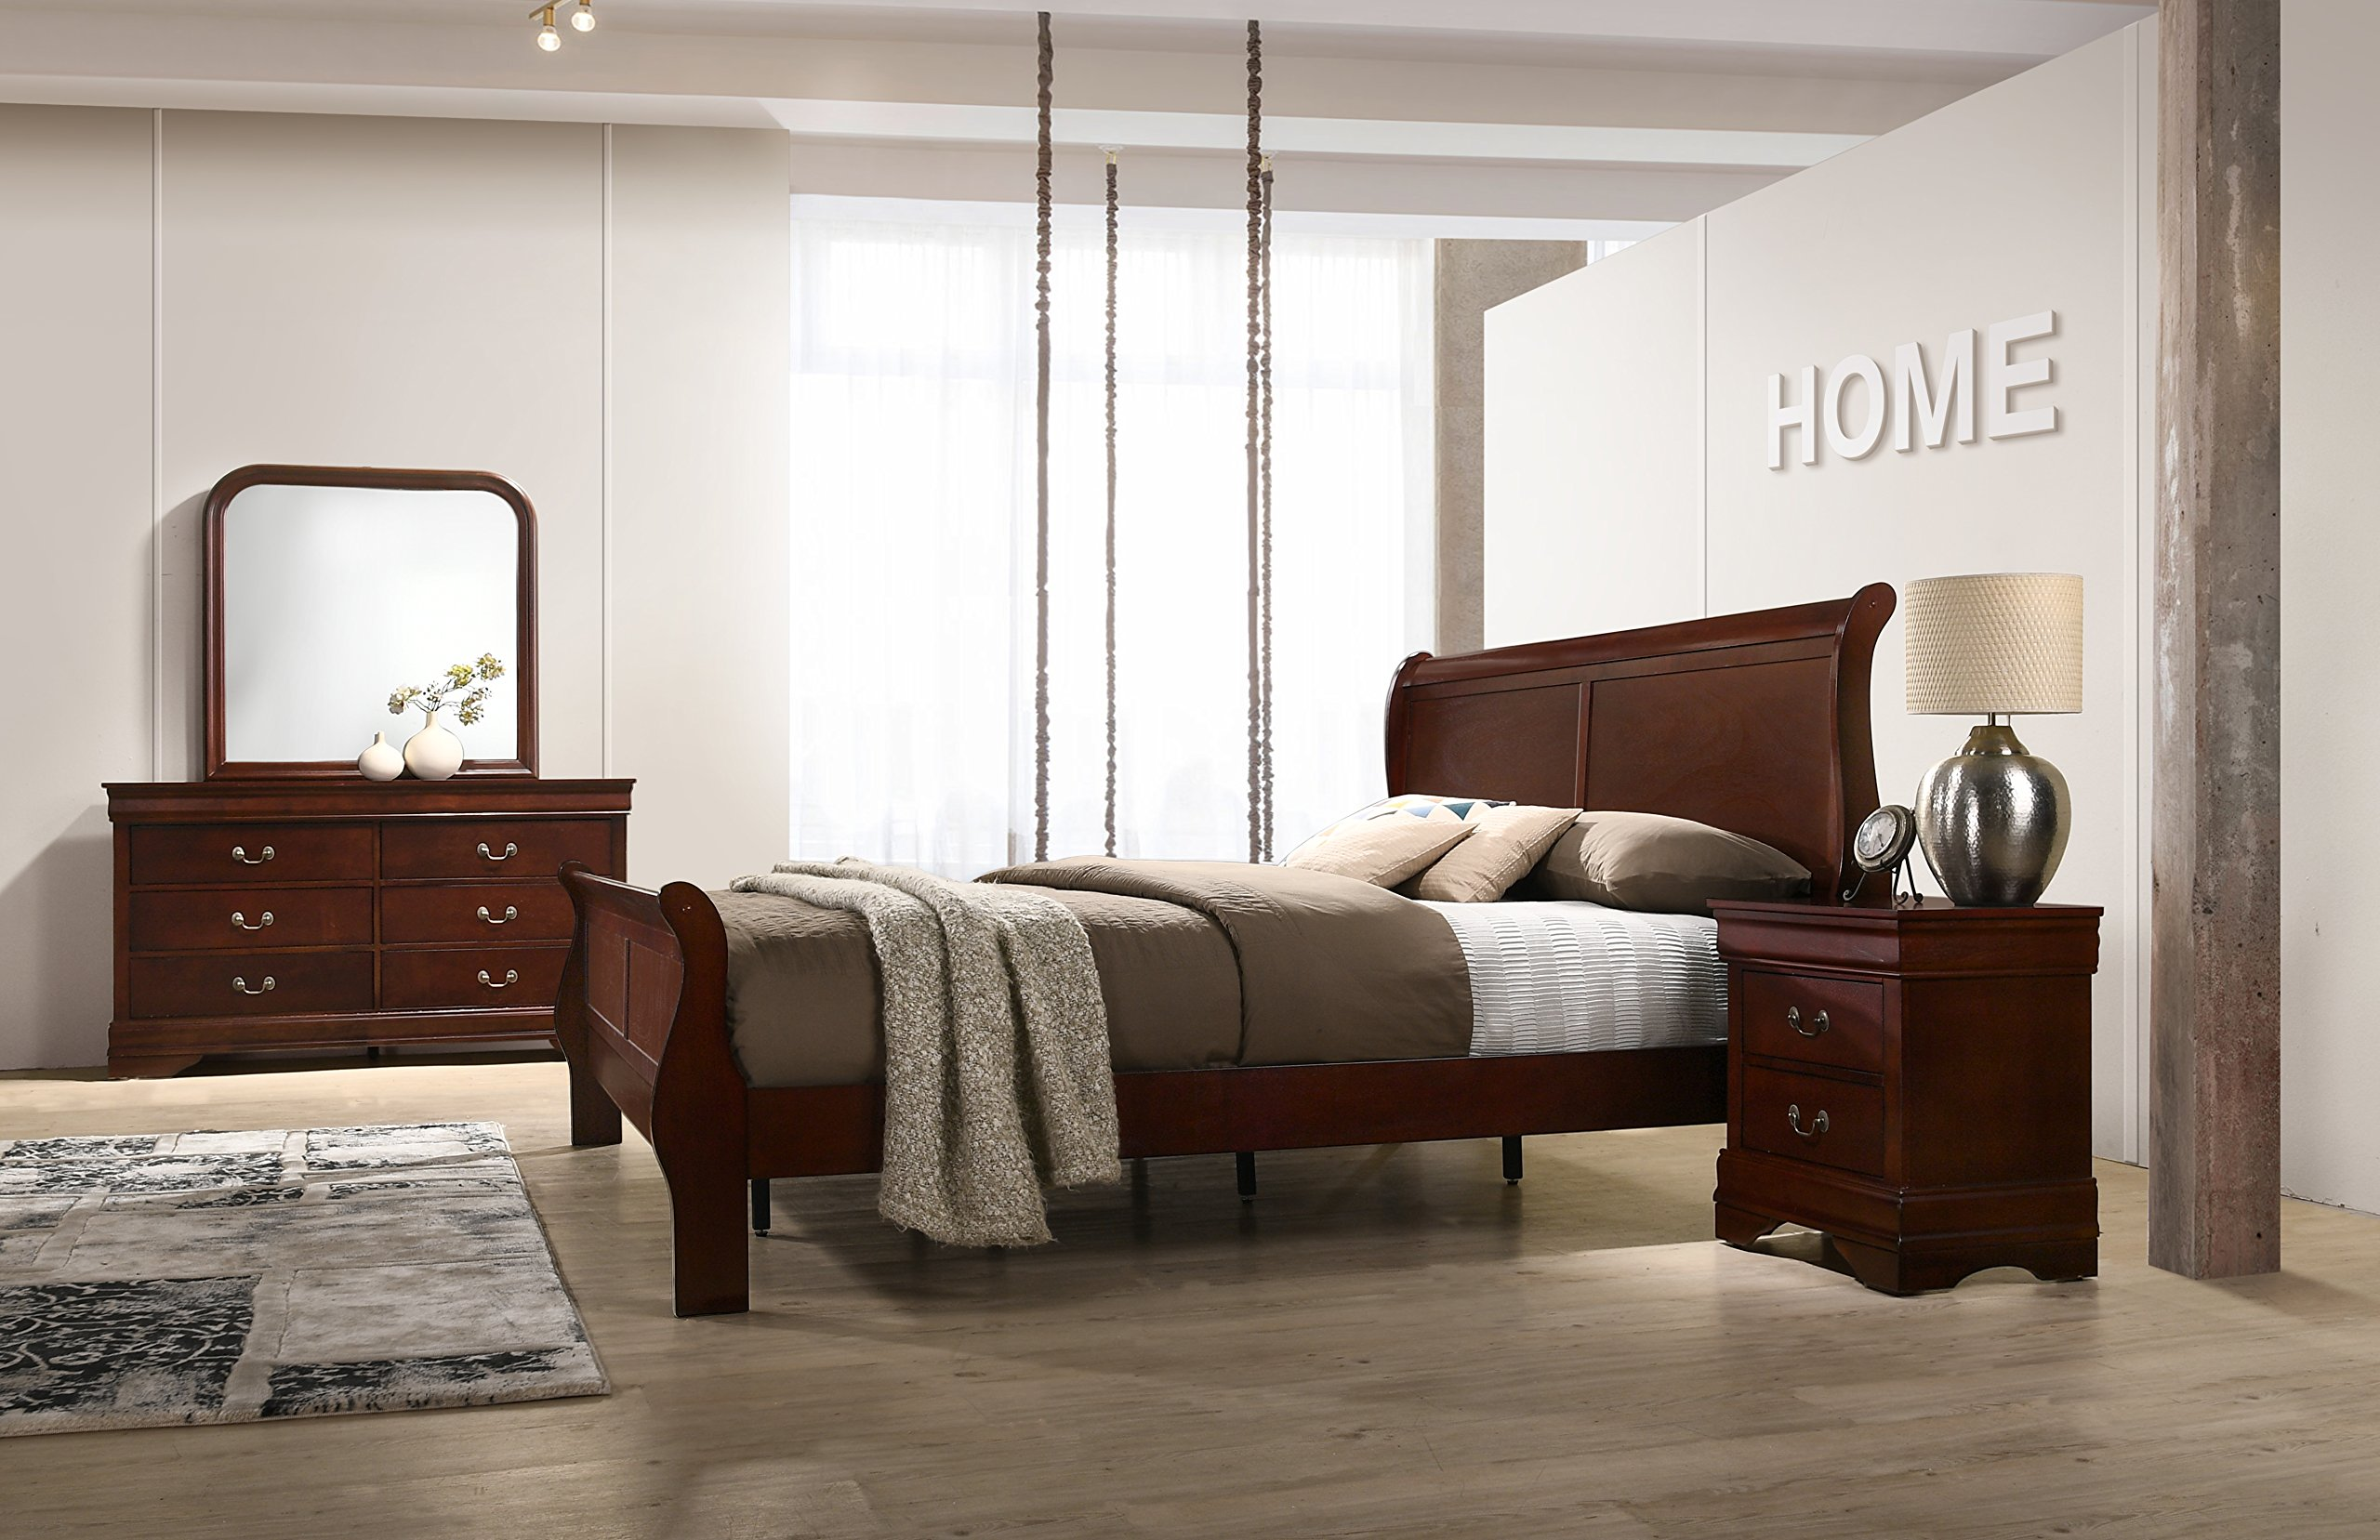 Roundhill Furniture Isola Louis Philippe Style Sleigh Bedroom Set, Queen Bed, Dresser, Mirror and Night Stand, Cherry Finish by Roundhill Furniture